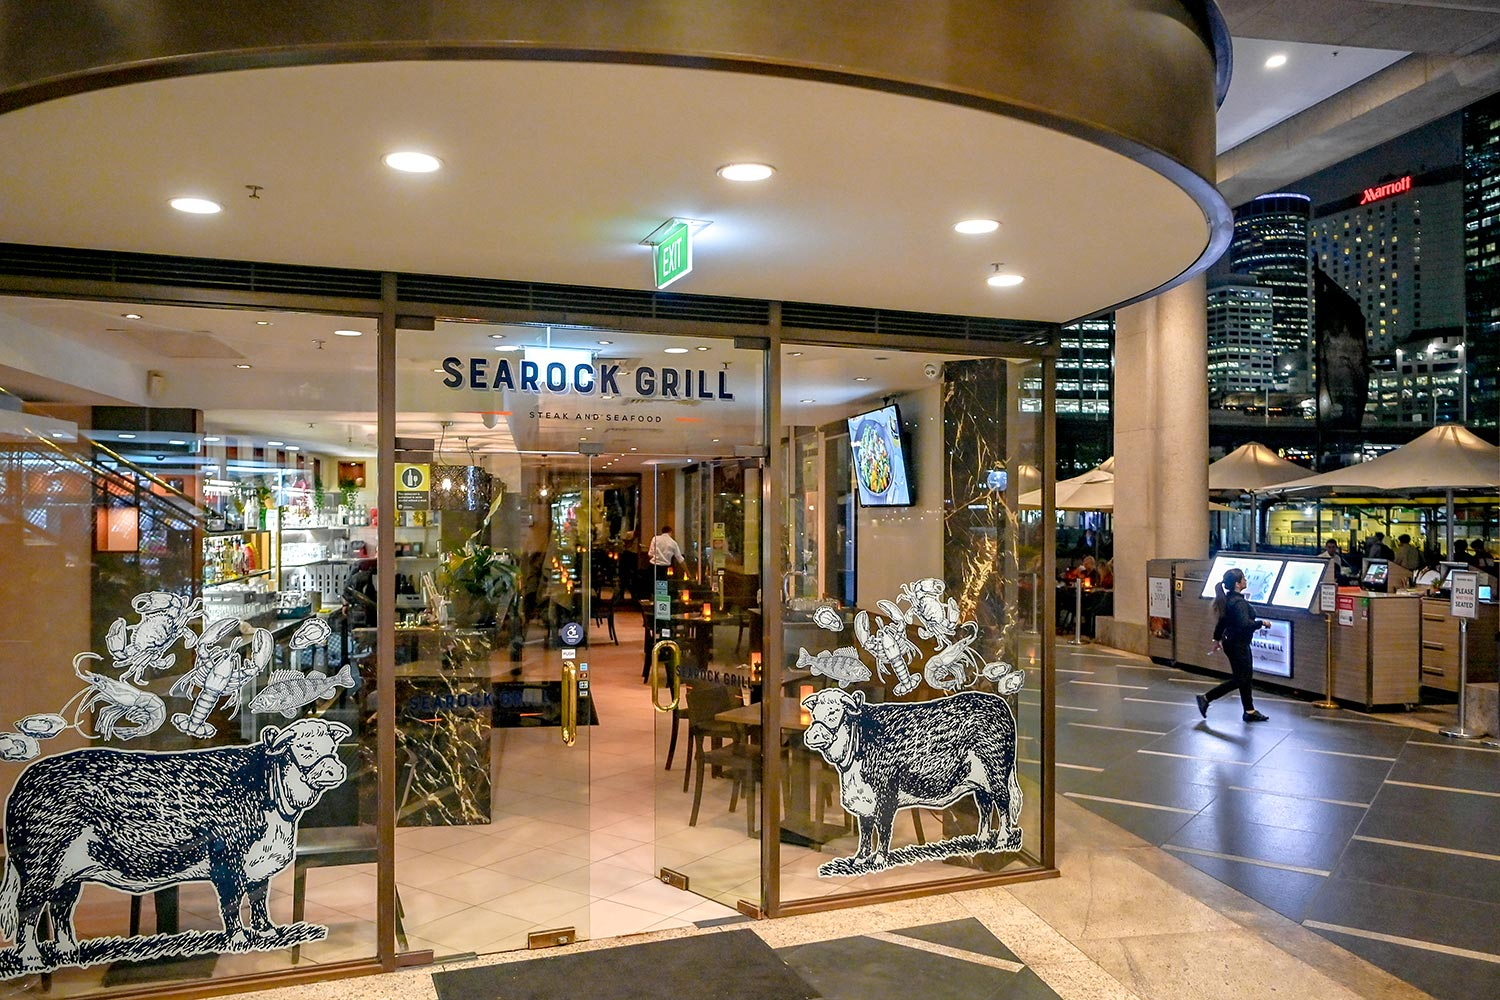 Searock Grill exterior entrance